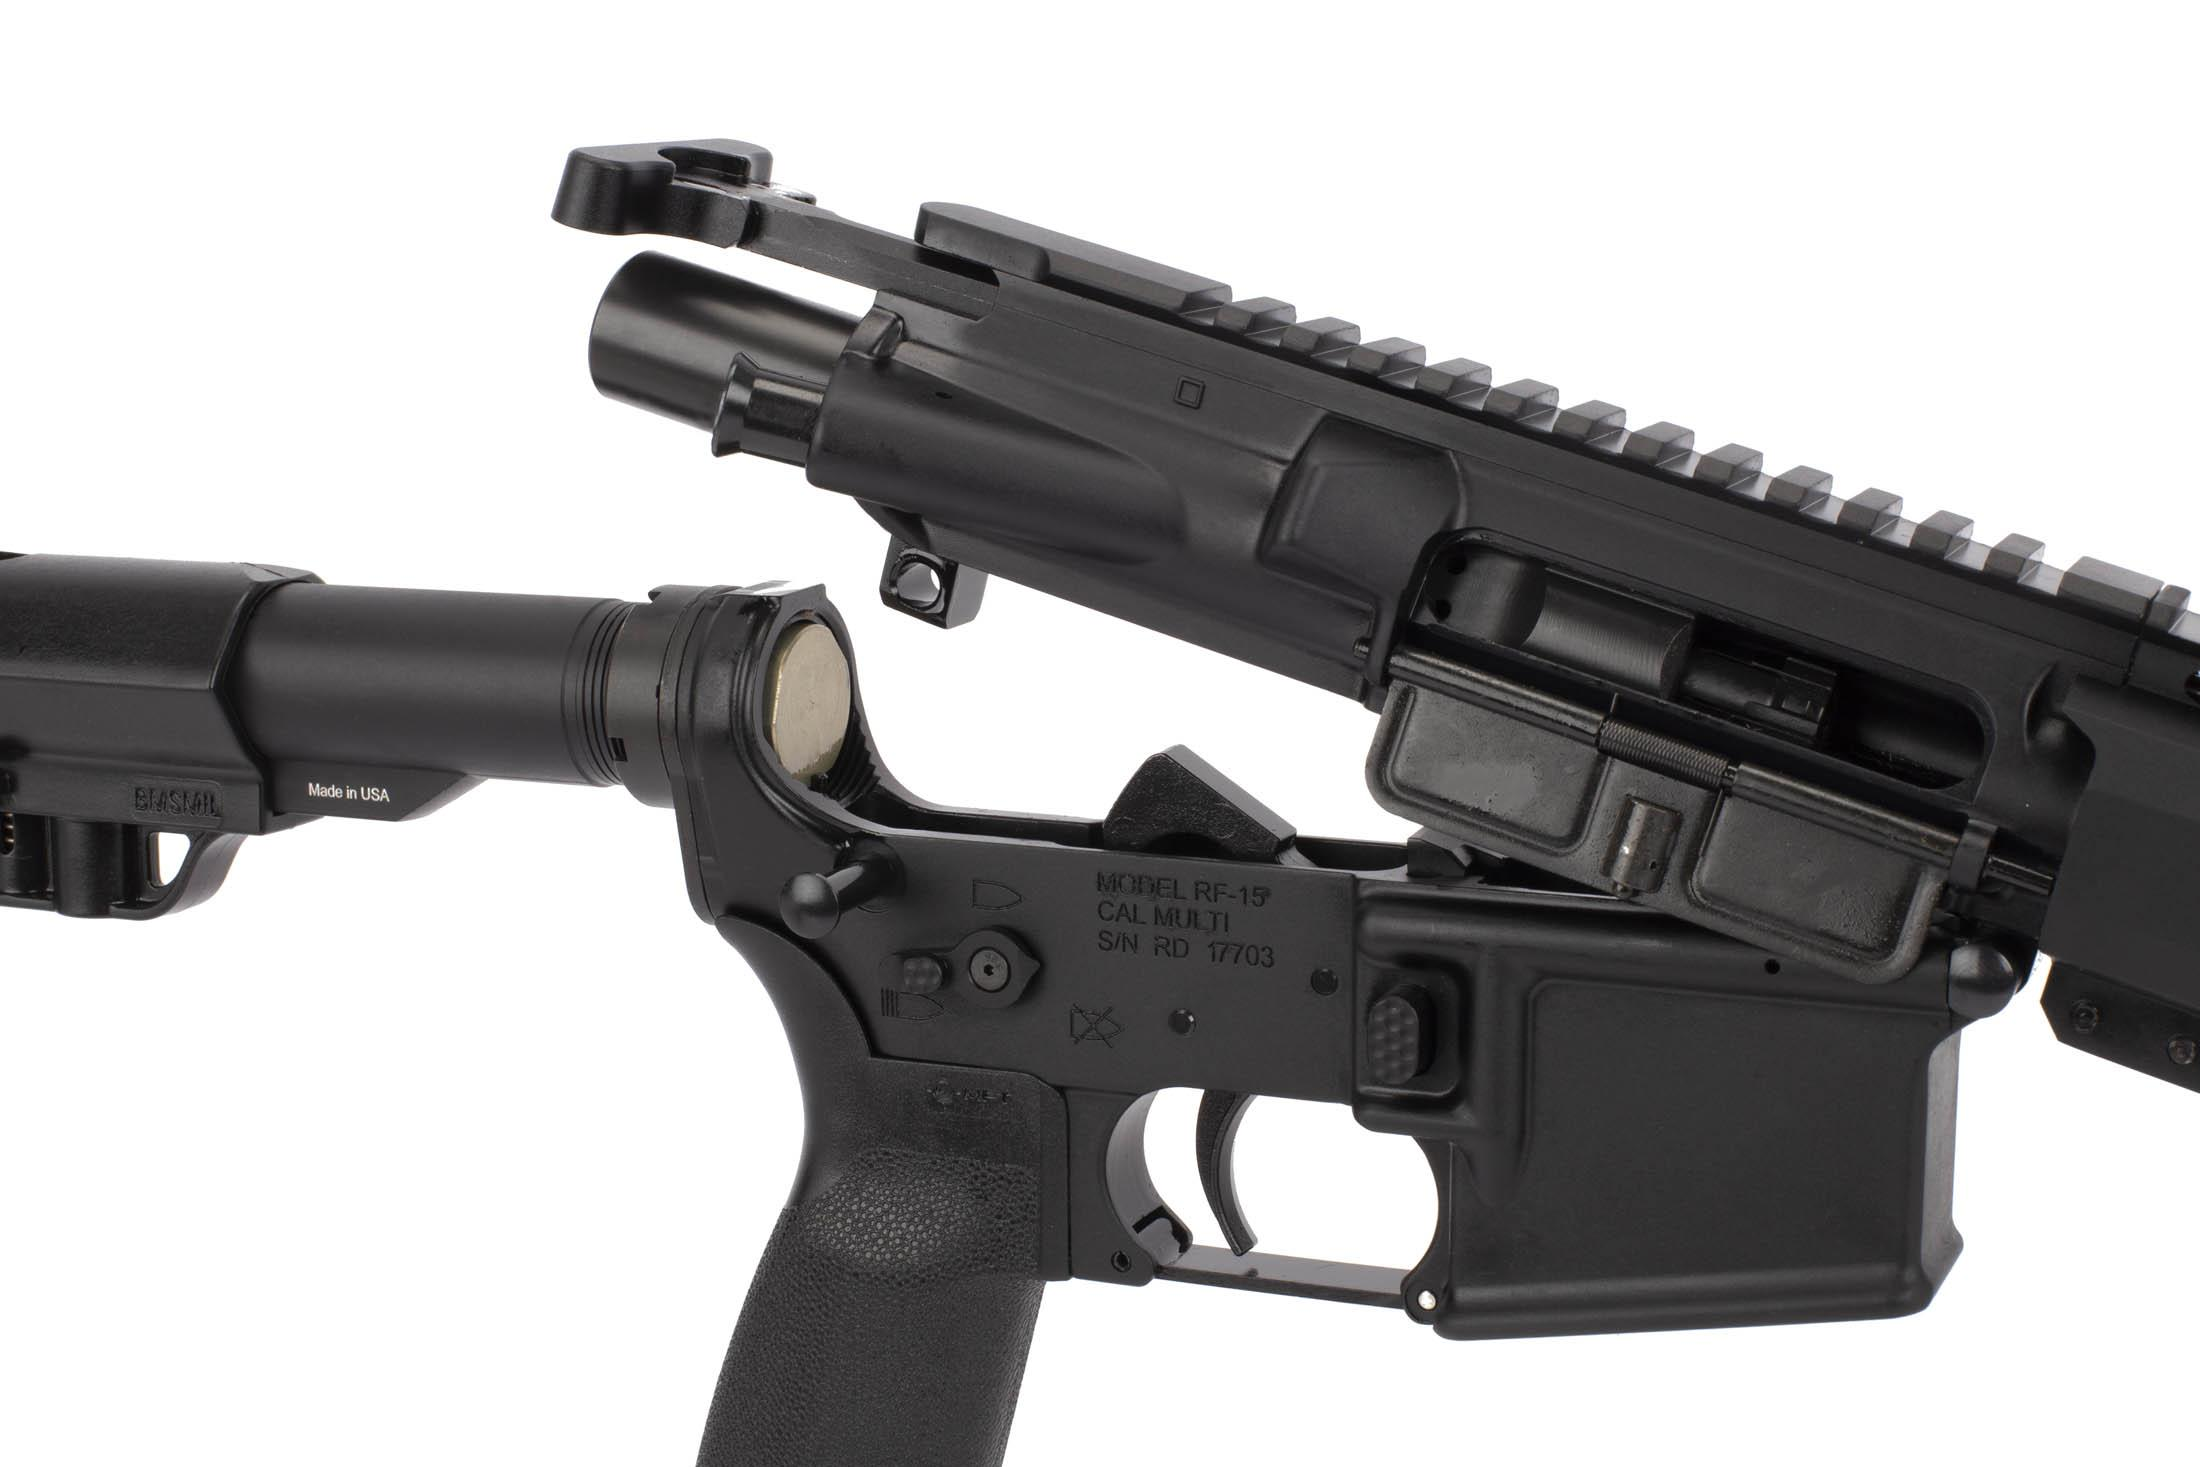 Radical Firearms 16in 300 BLK AR-15 has a standard carbine buffer, MIL-SPEC M16 bolt carrier group, and MIL-SPEC trigger.